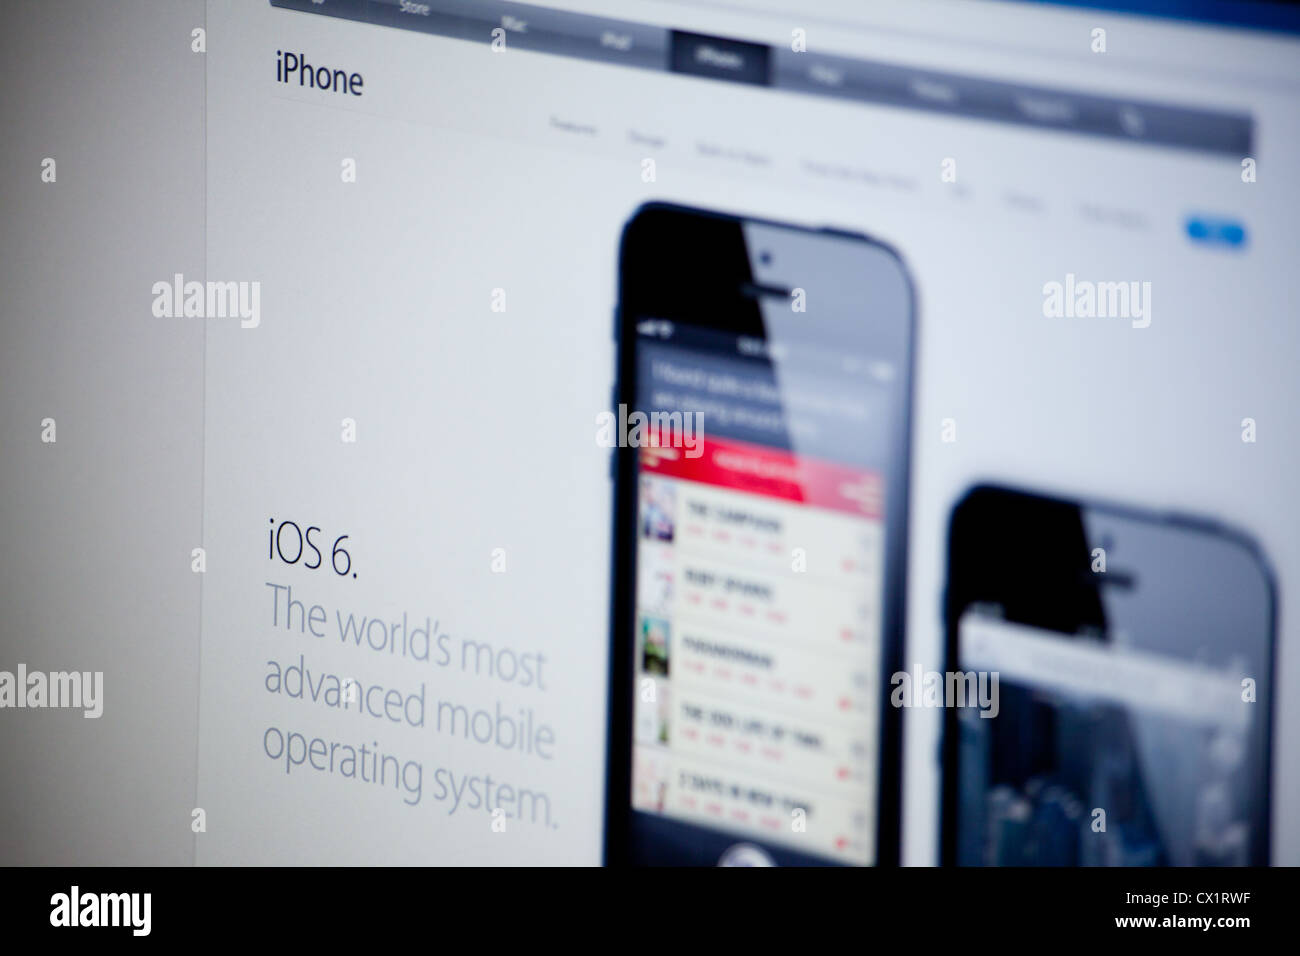 Apple website screenshot with iPhone 5 presentation page - Stock Image